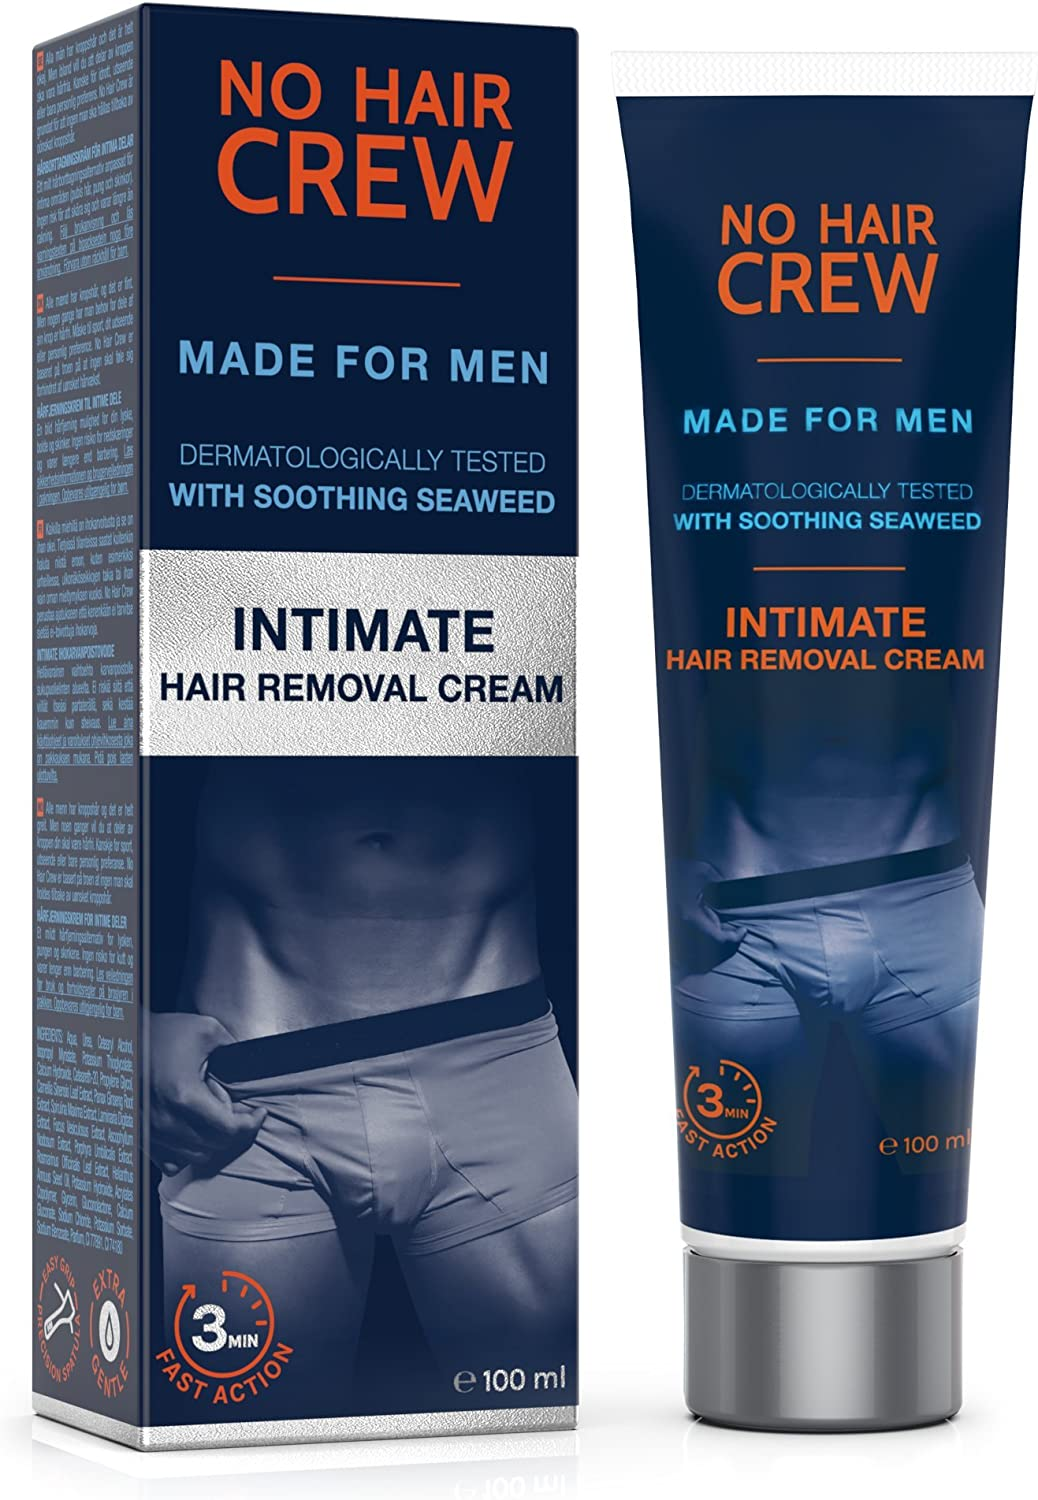 No Hair Crew Premium Intimate Hair Removal Cream Extra Gentle